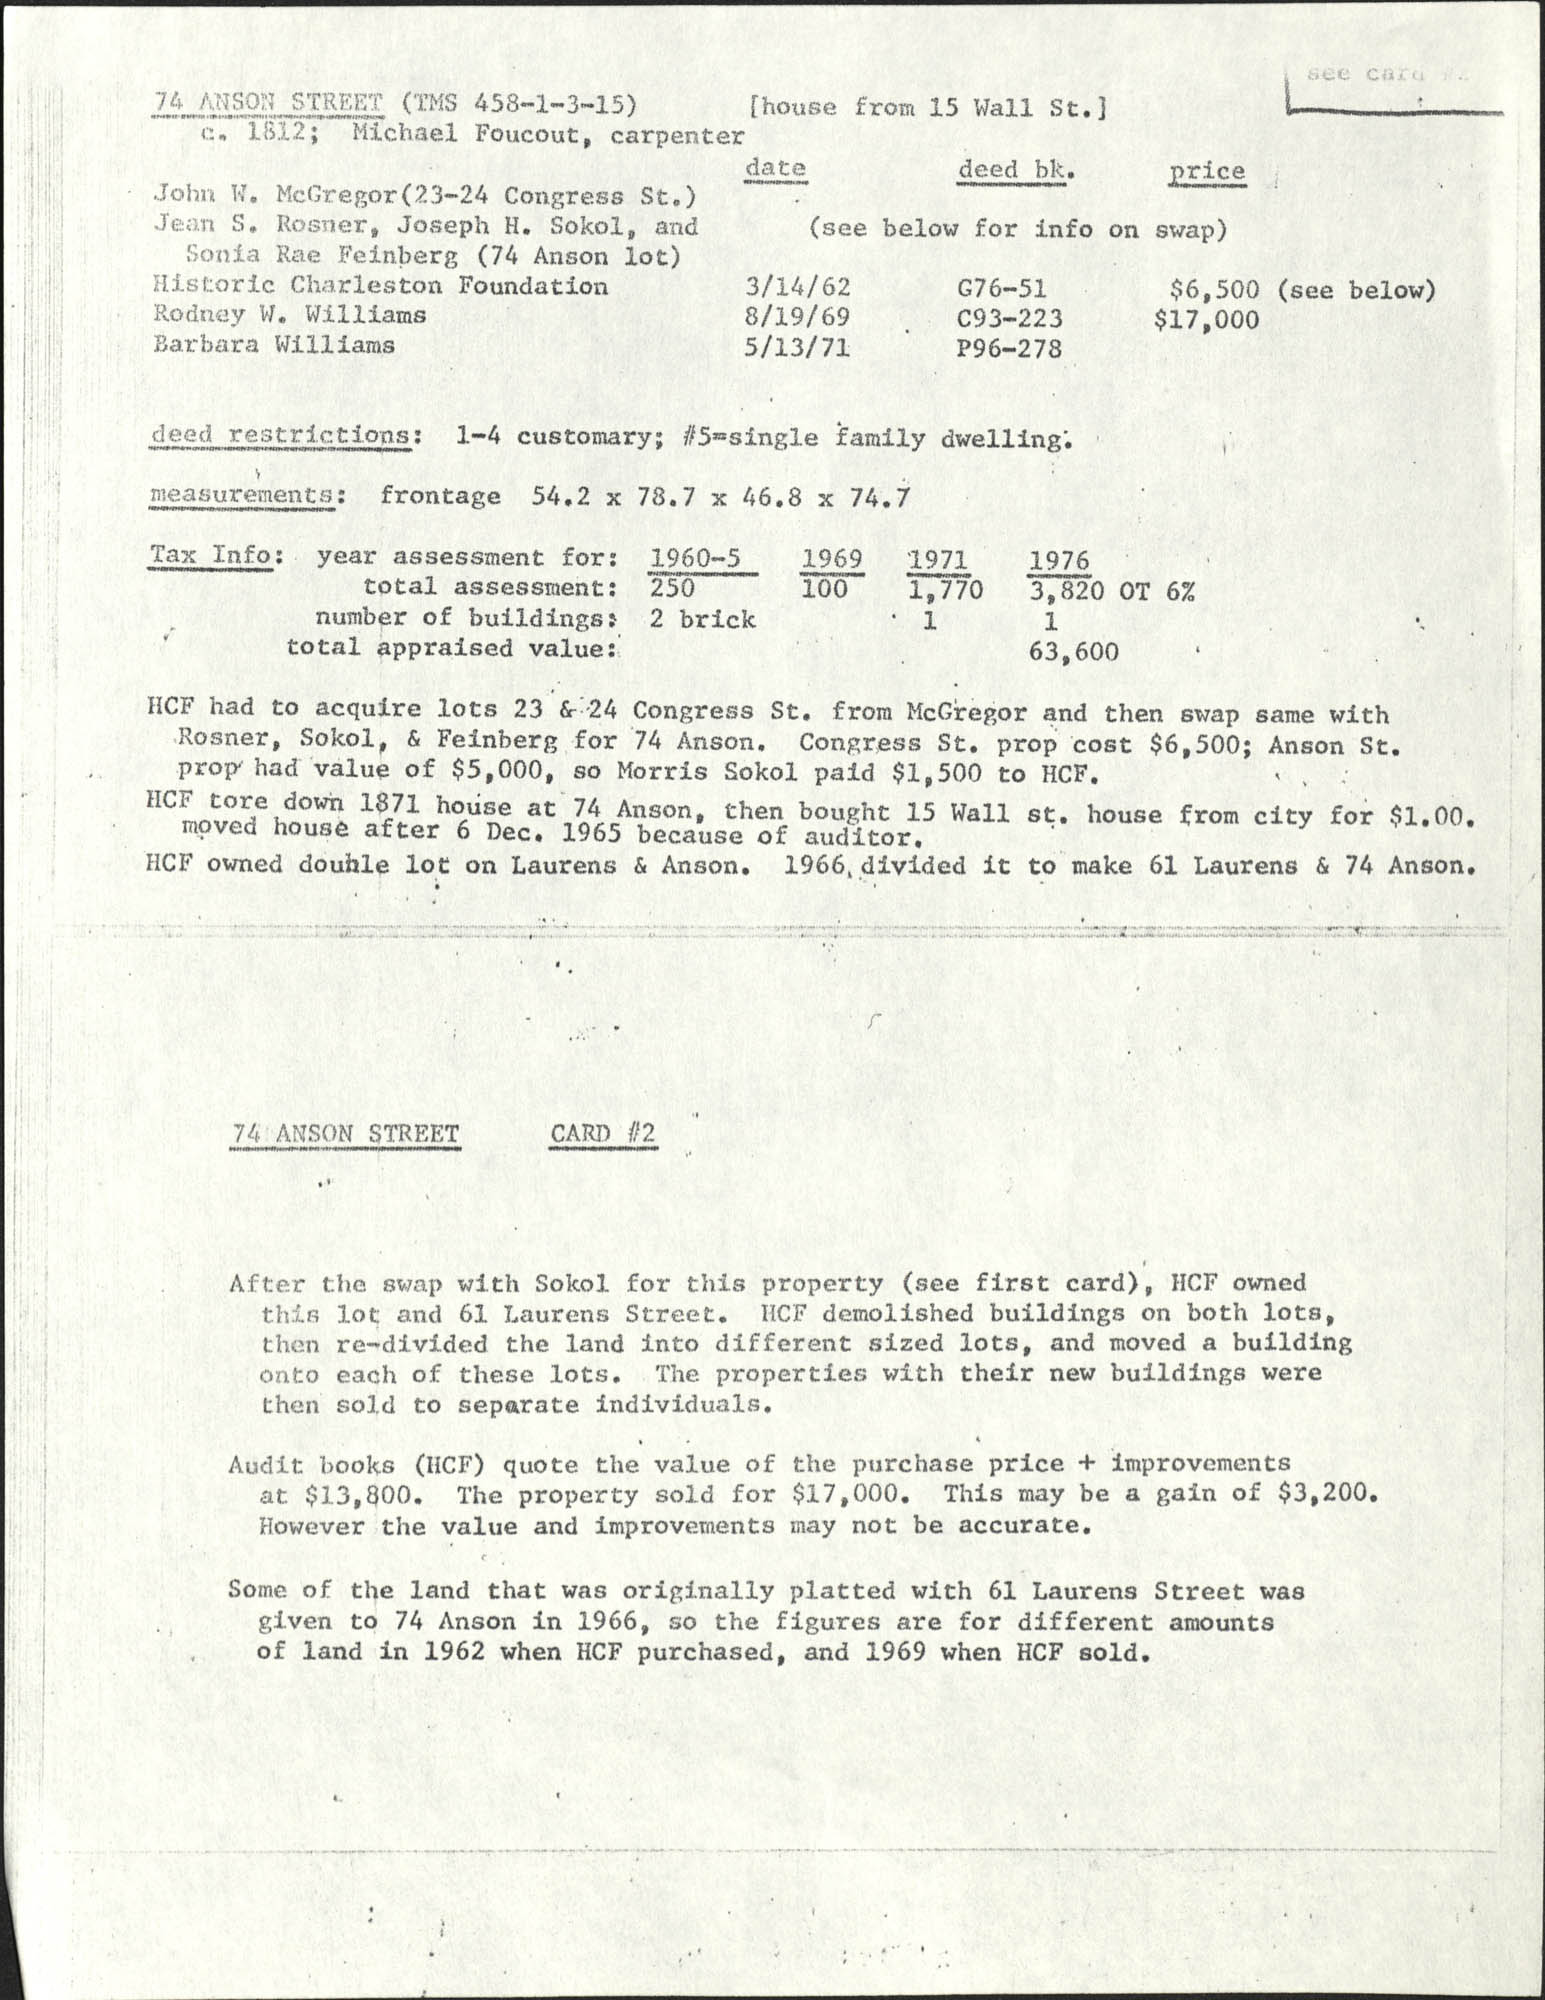 Deed records for 74 Anson Street